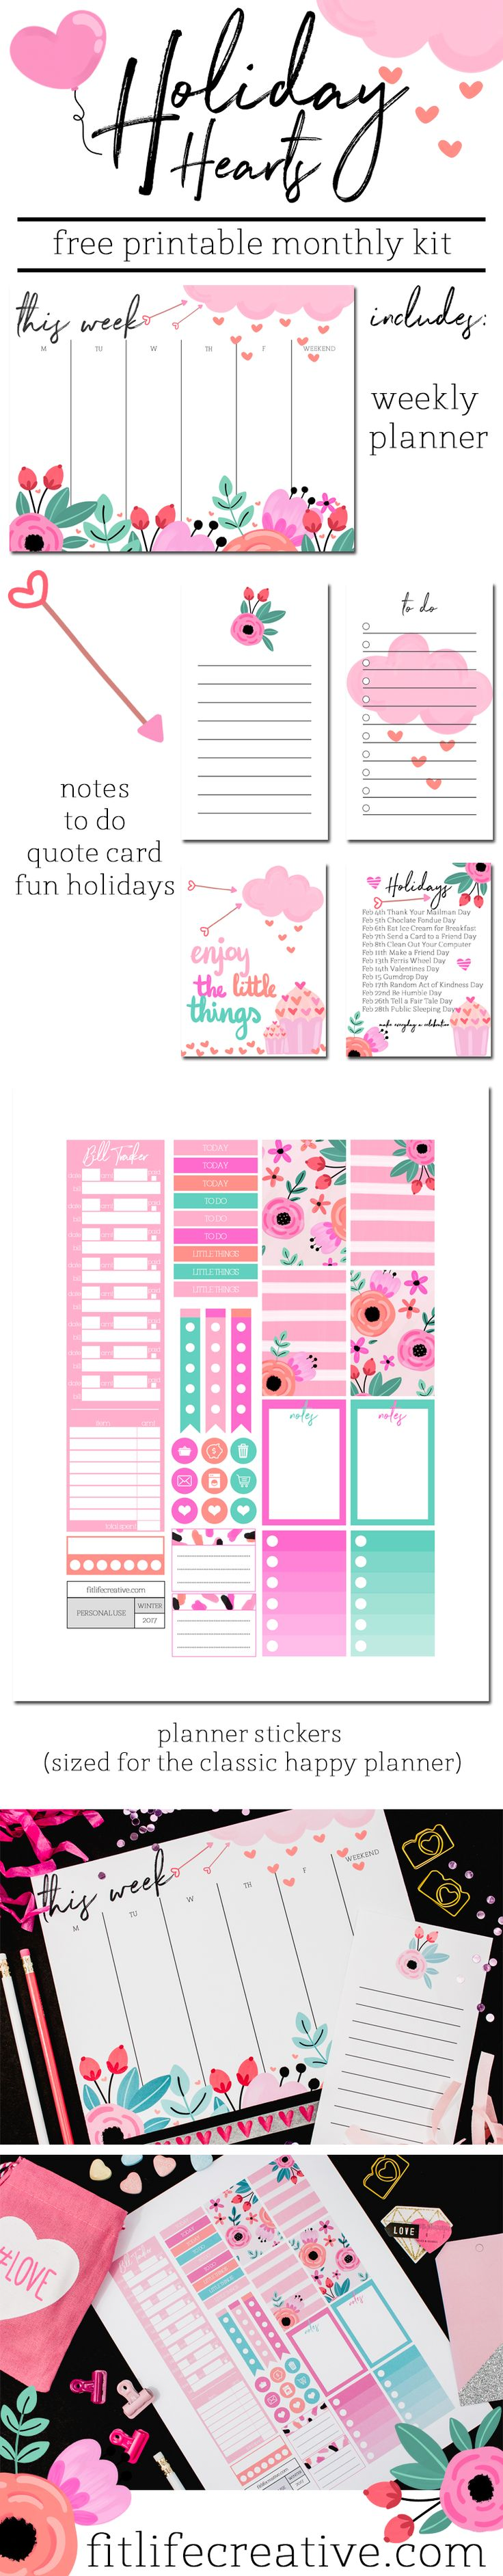 17 best ideas about printable planner on pinterest weekly